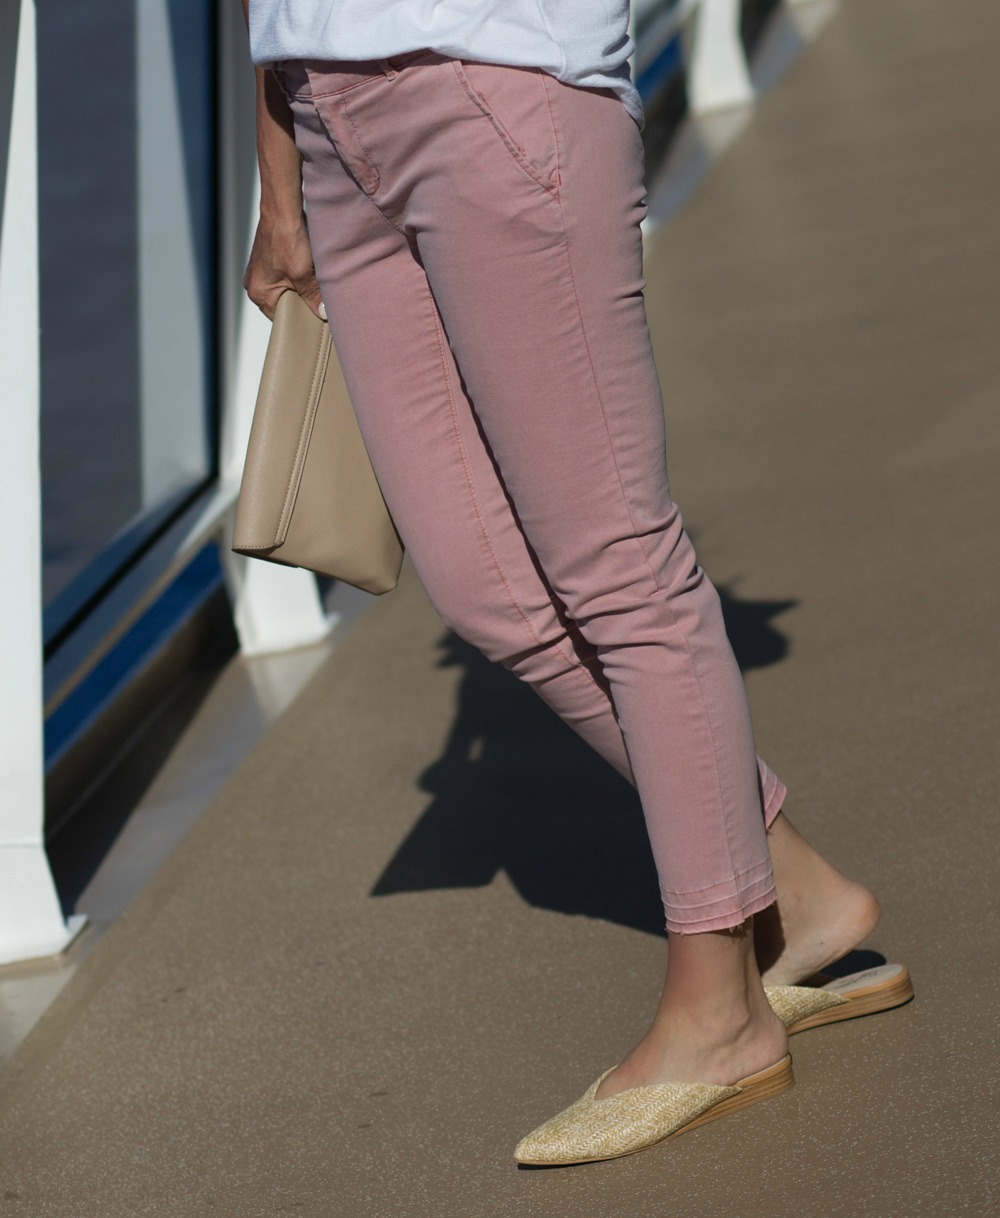 White Top with Pink Chinos